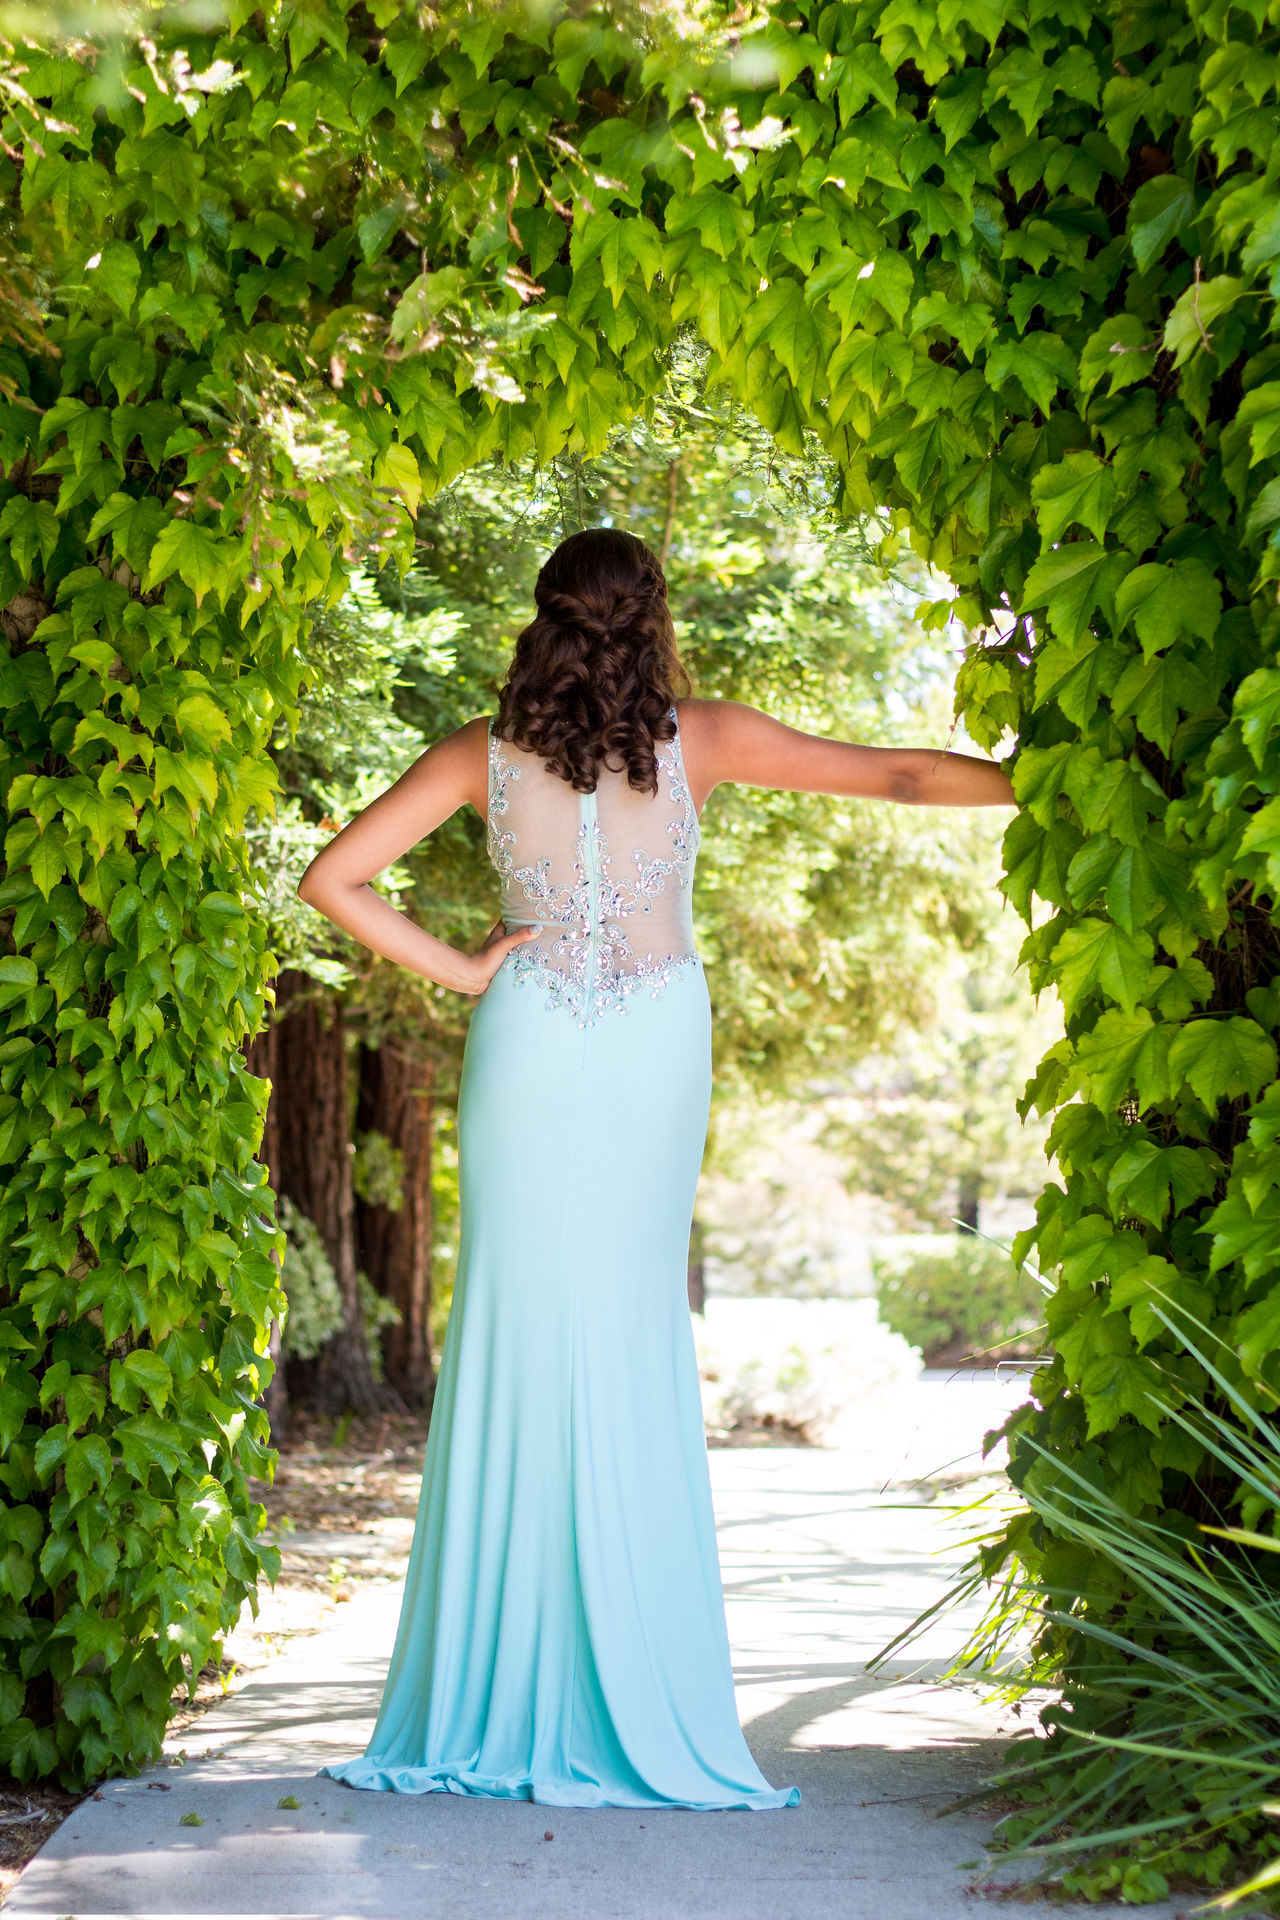 Beautiful stock photos of prom, rear view, dress, brown hair, only women